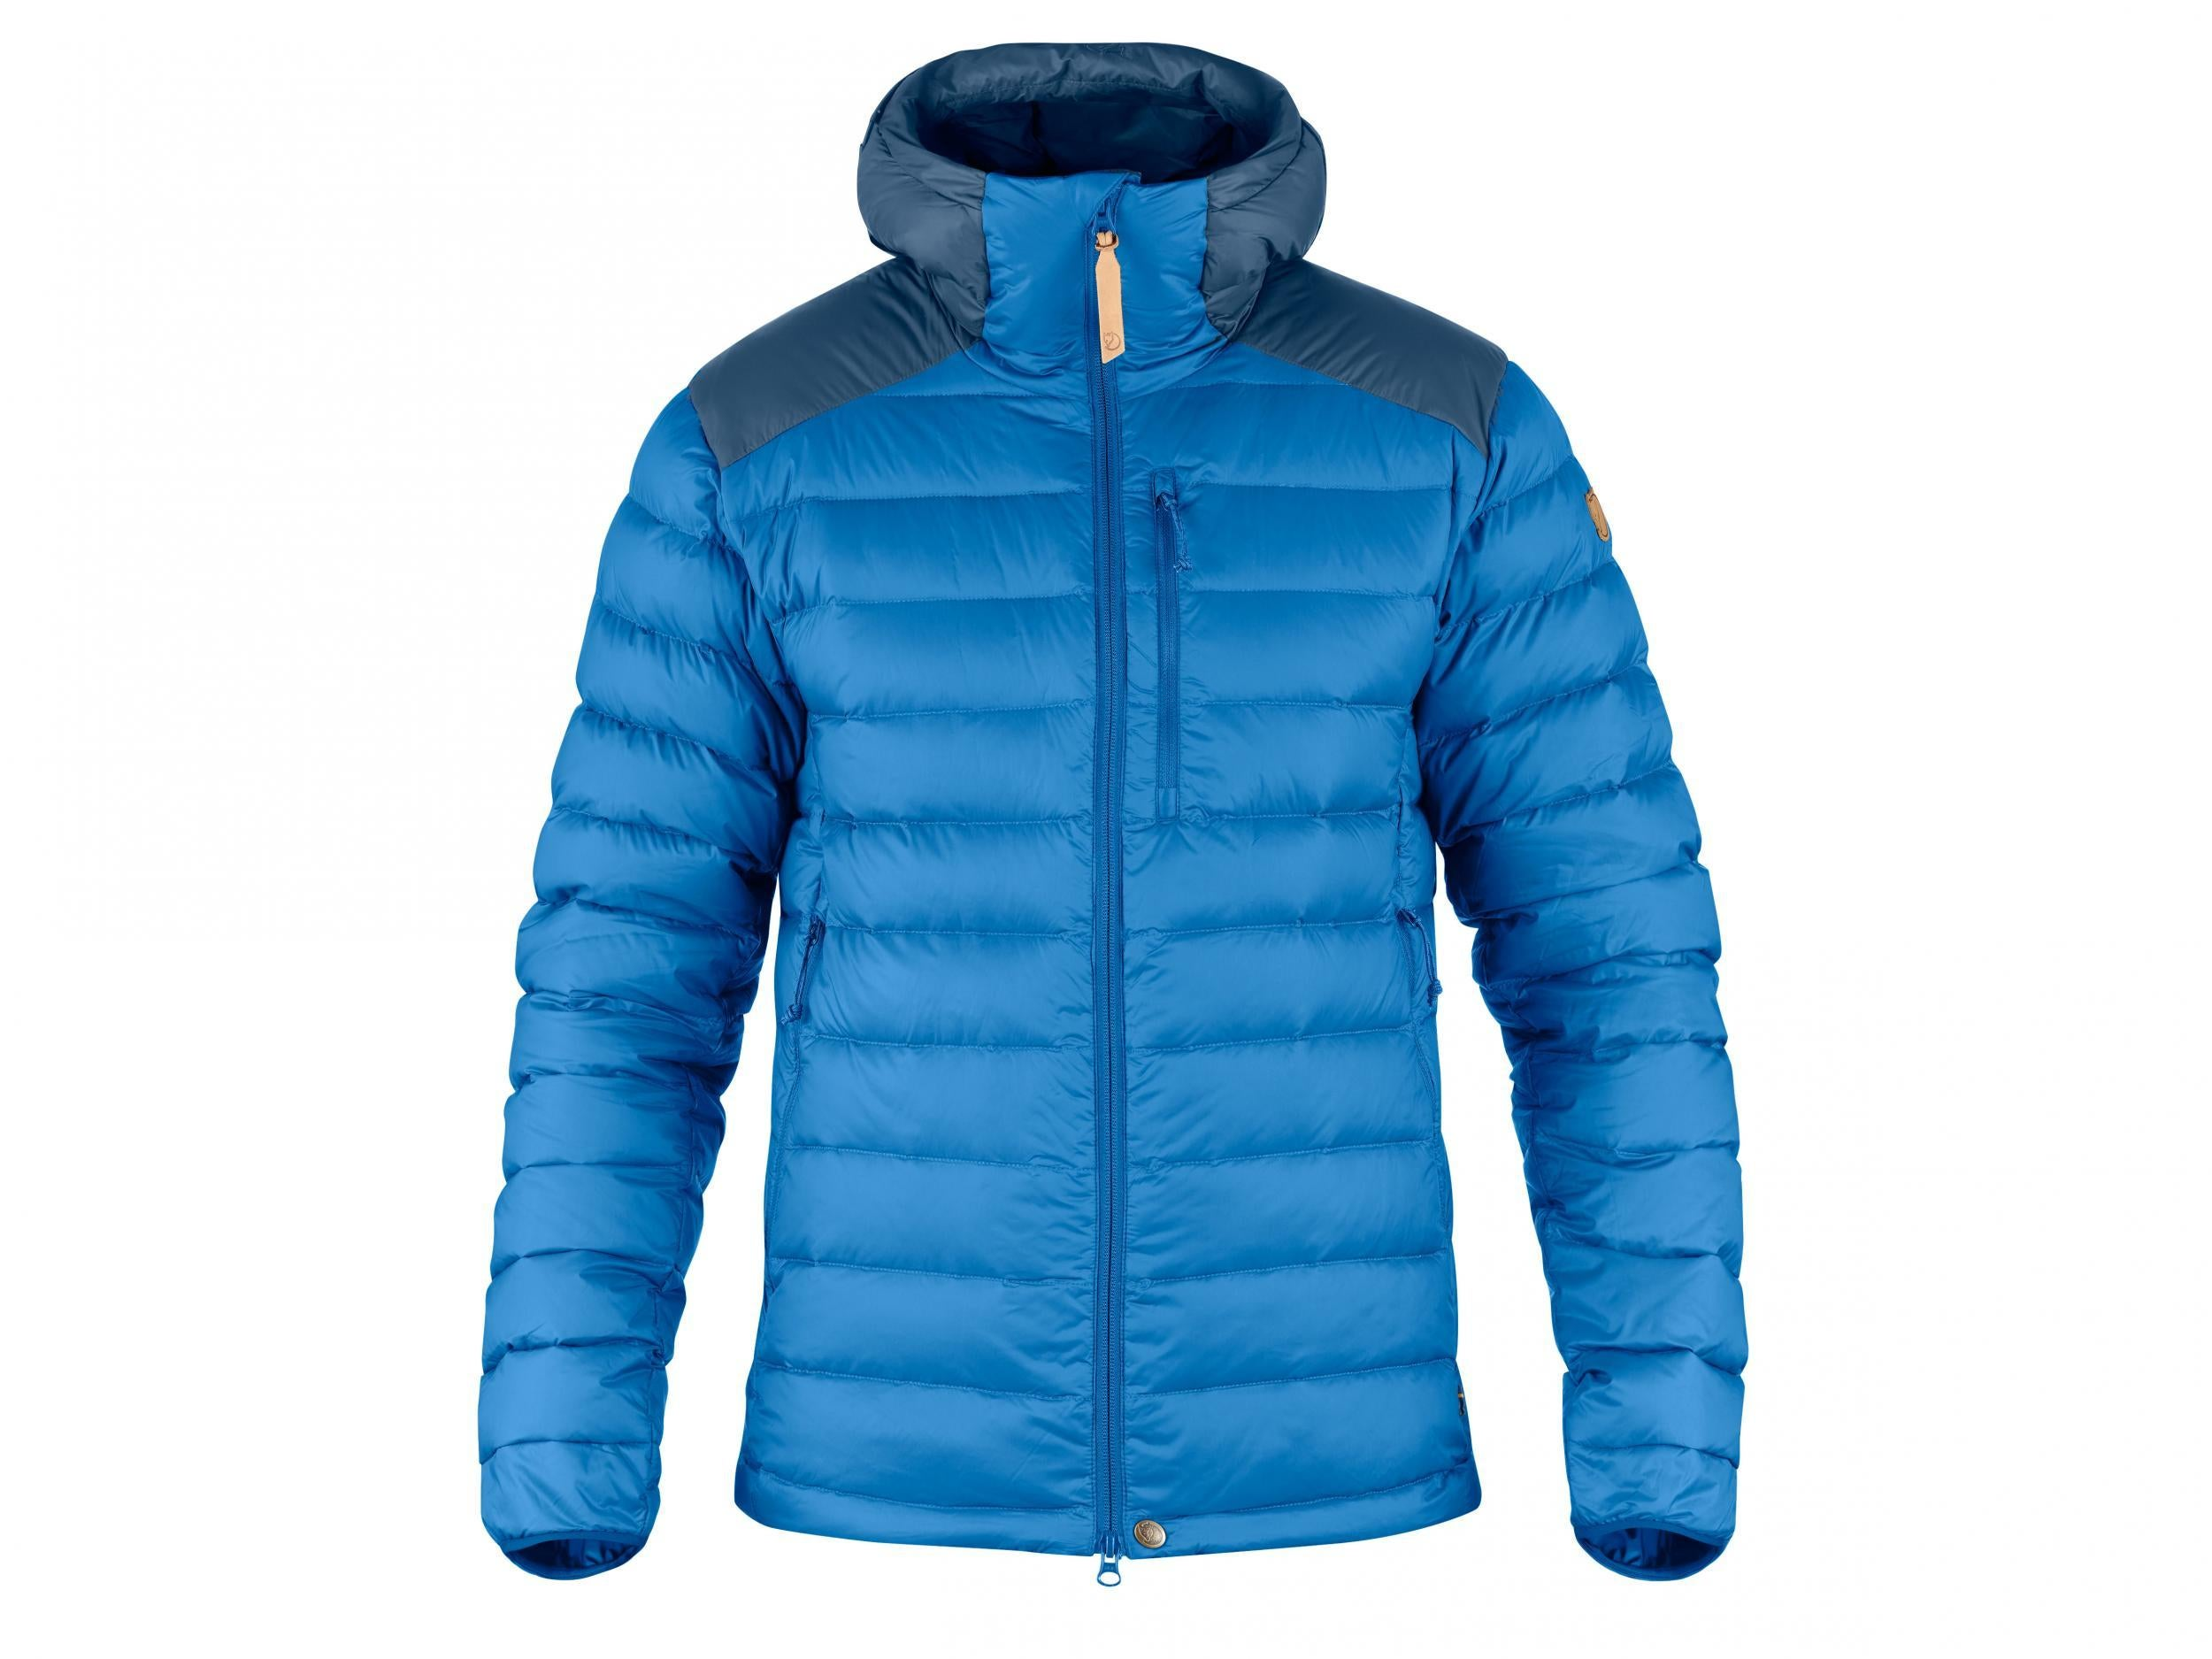 43422be4b5 13 best men's ski and snowboard jackets | The Independent